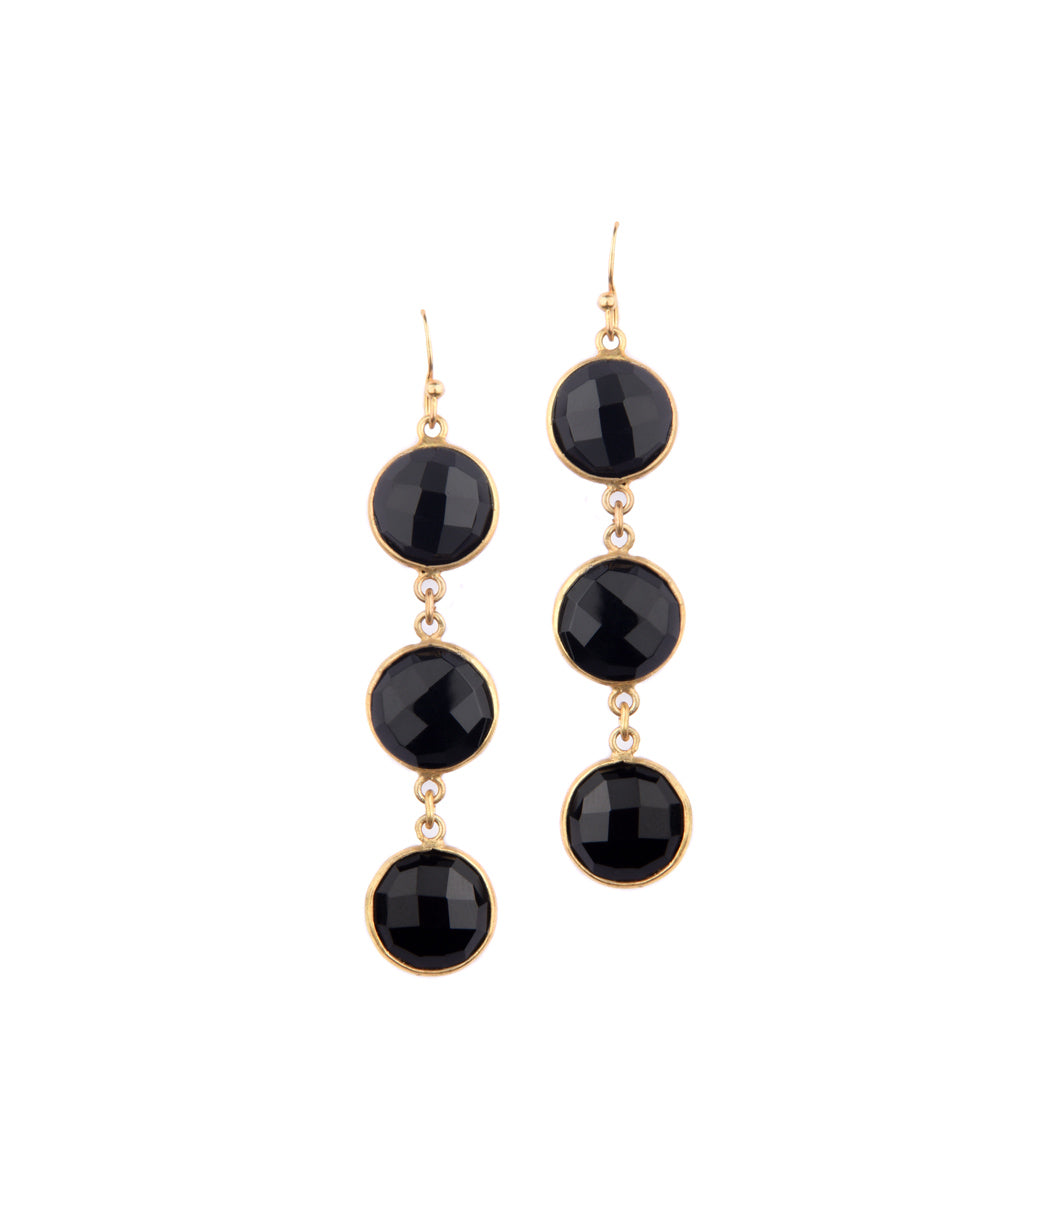 Sable Onyx Earrings